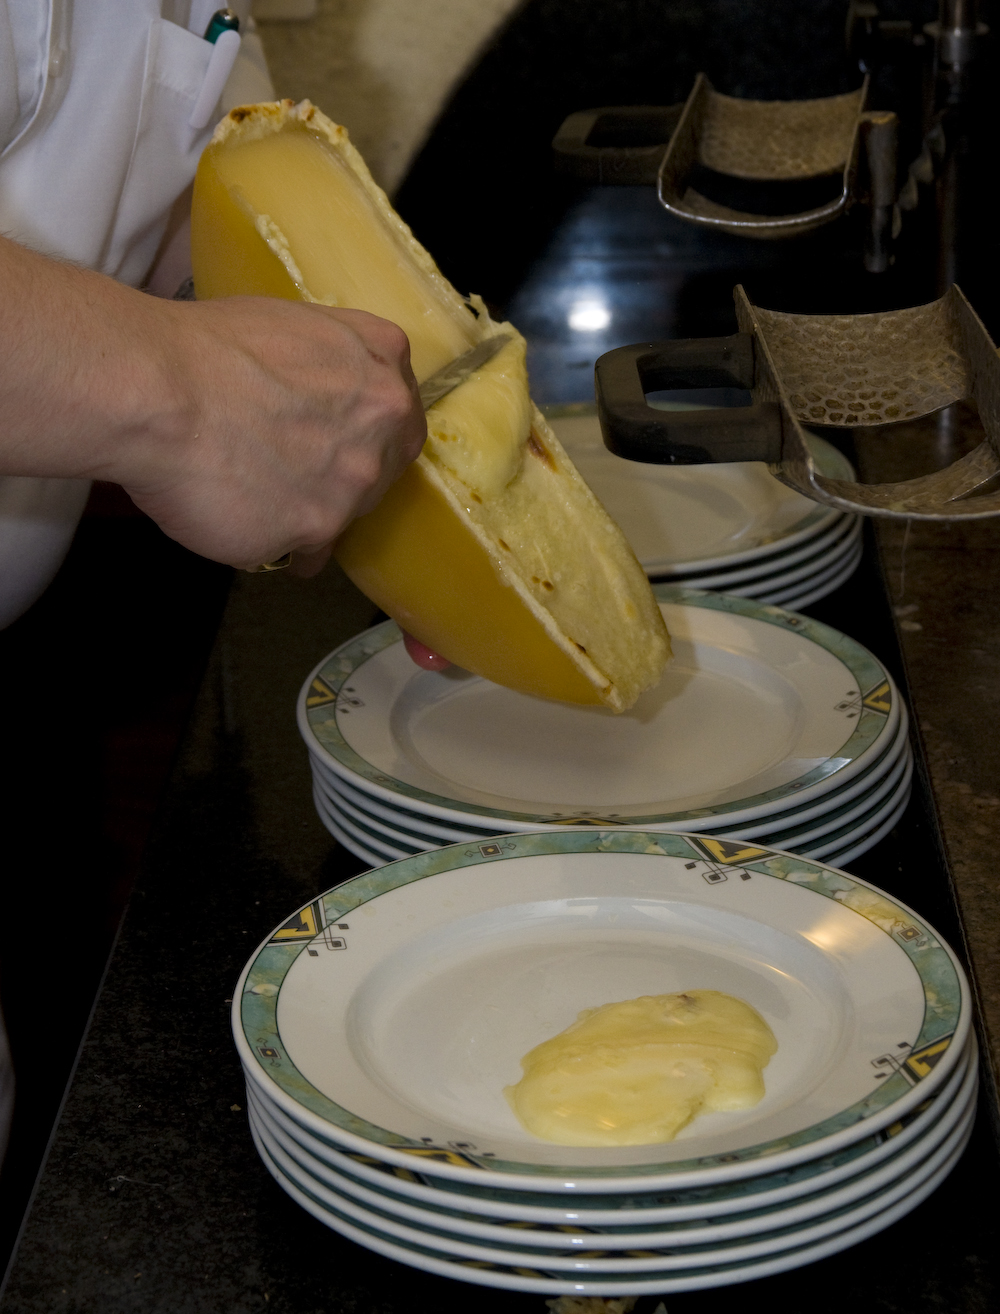 "Back to article &lsquo;<p><a href=""http://fxcuisine.com/zoom-image.asp?image=http://fxcuisine.com/blogimages/swiss-cuisine/raclette/valais-raclette-08-1000.jpg&t=%%t%%""><img src=""http://fxcuisine.com/blogimages/swiss-cuisin&rsquo;"